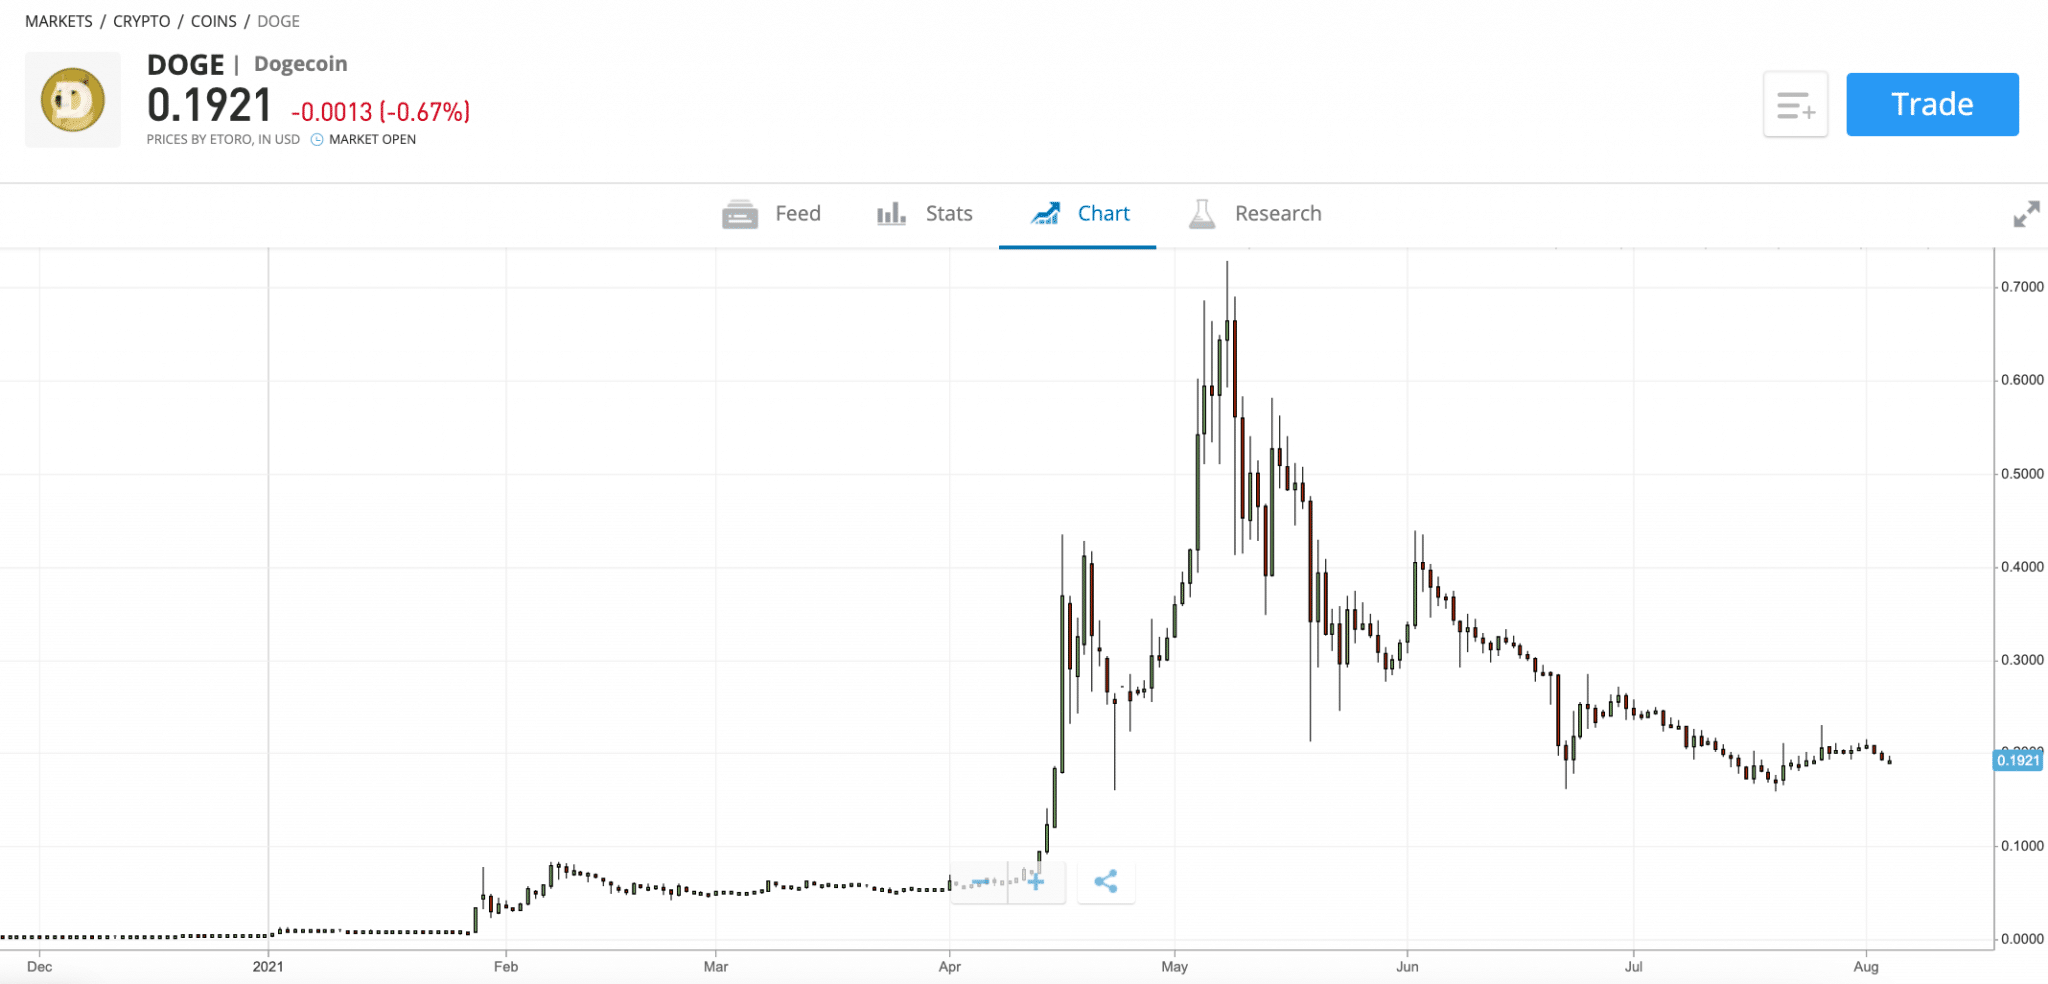 Dogecoin Price Prediction - Forecast for 2021, 2022, 2025 ...